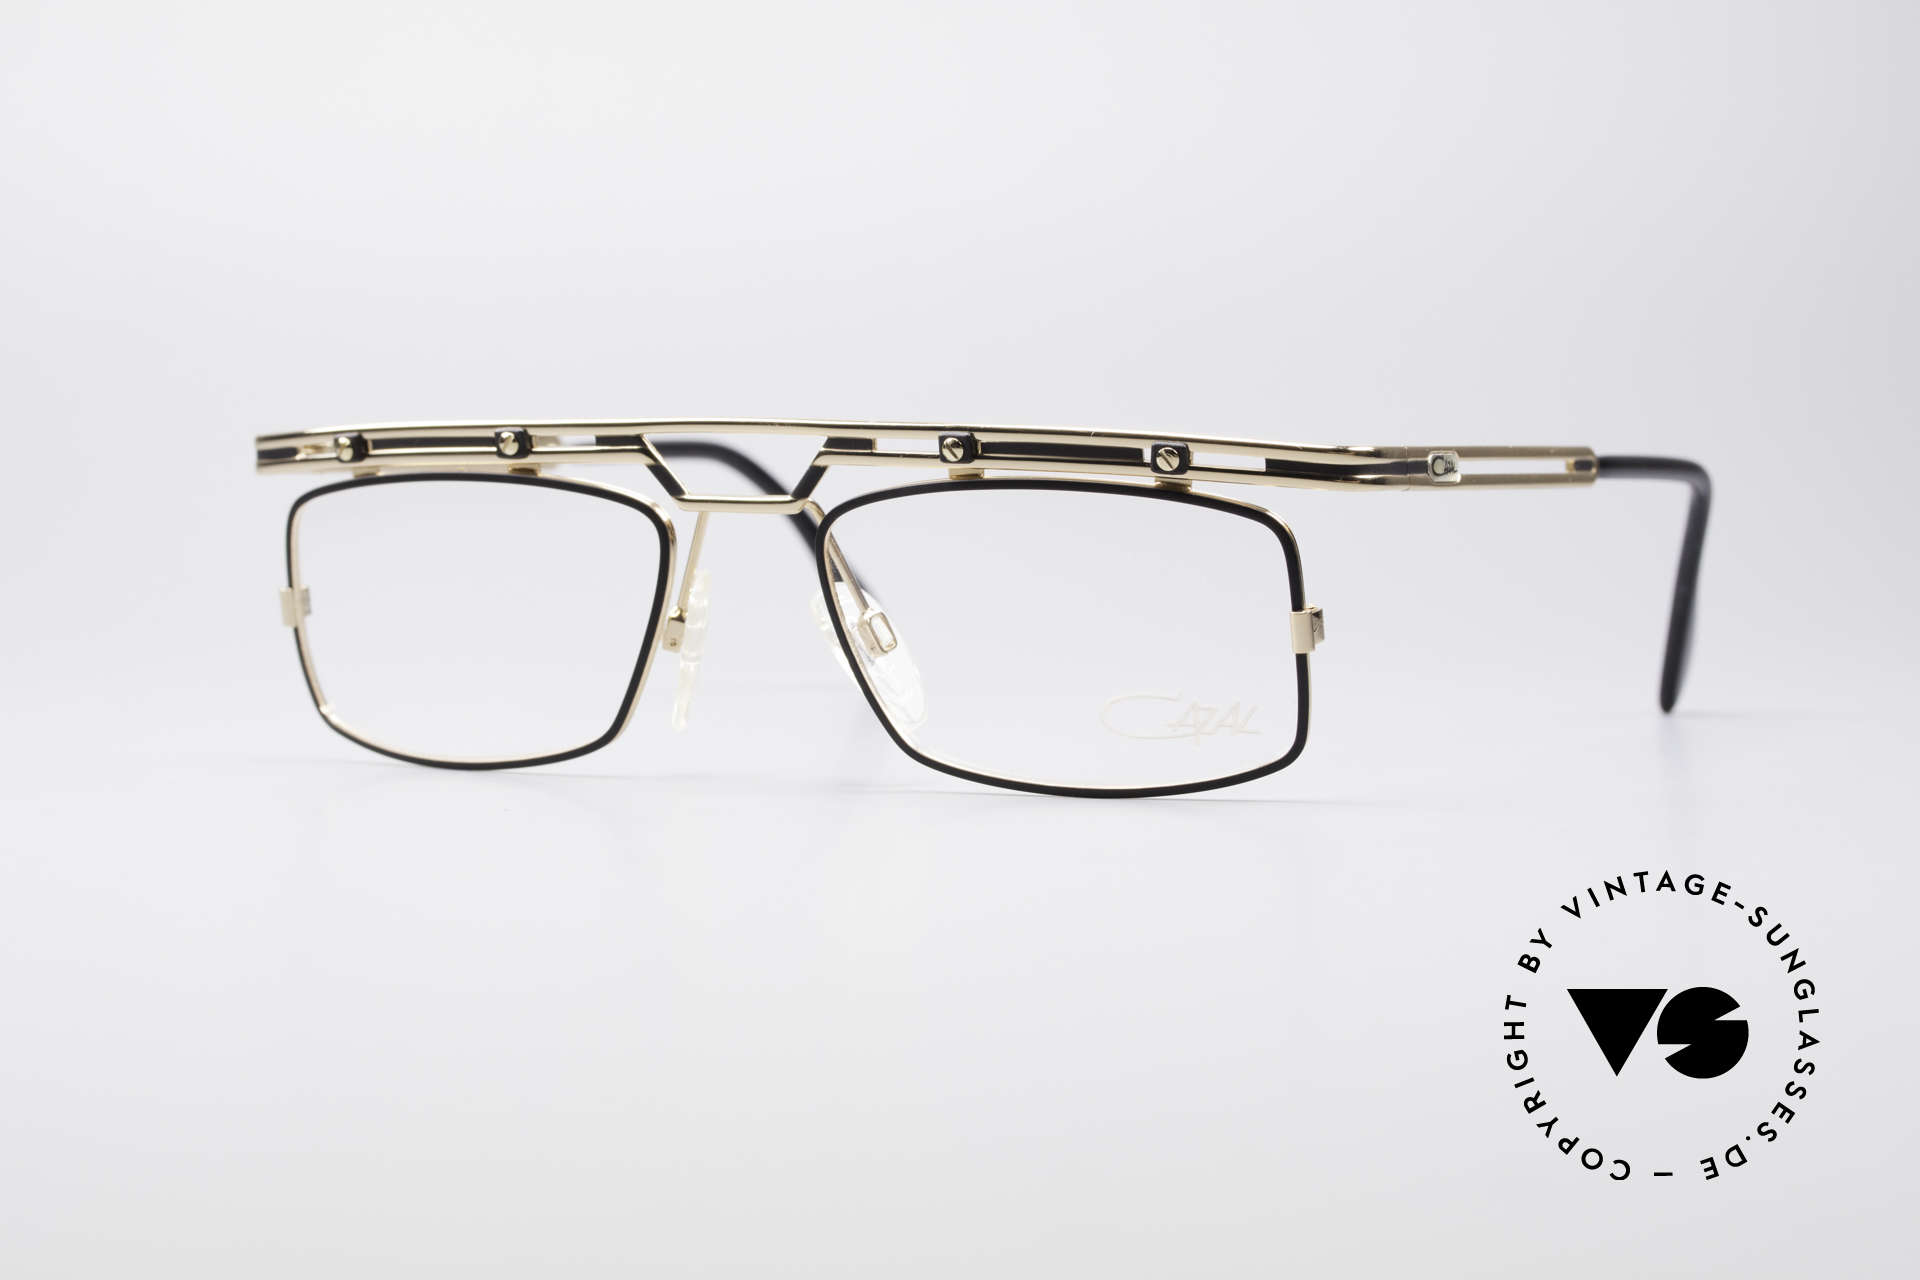 Cazal 975 Vintage 90's Designer Glasses, striking / square Cazal vintage glasses from 1996/97, Made for Men